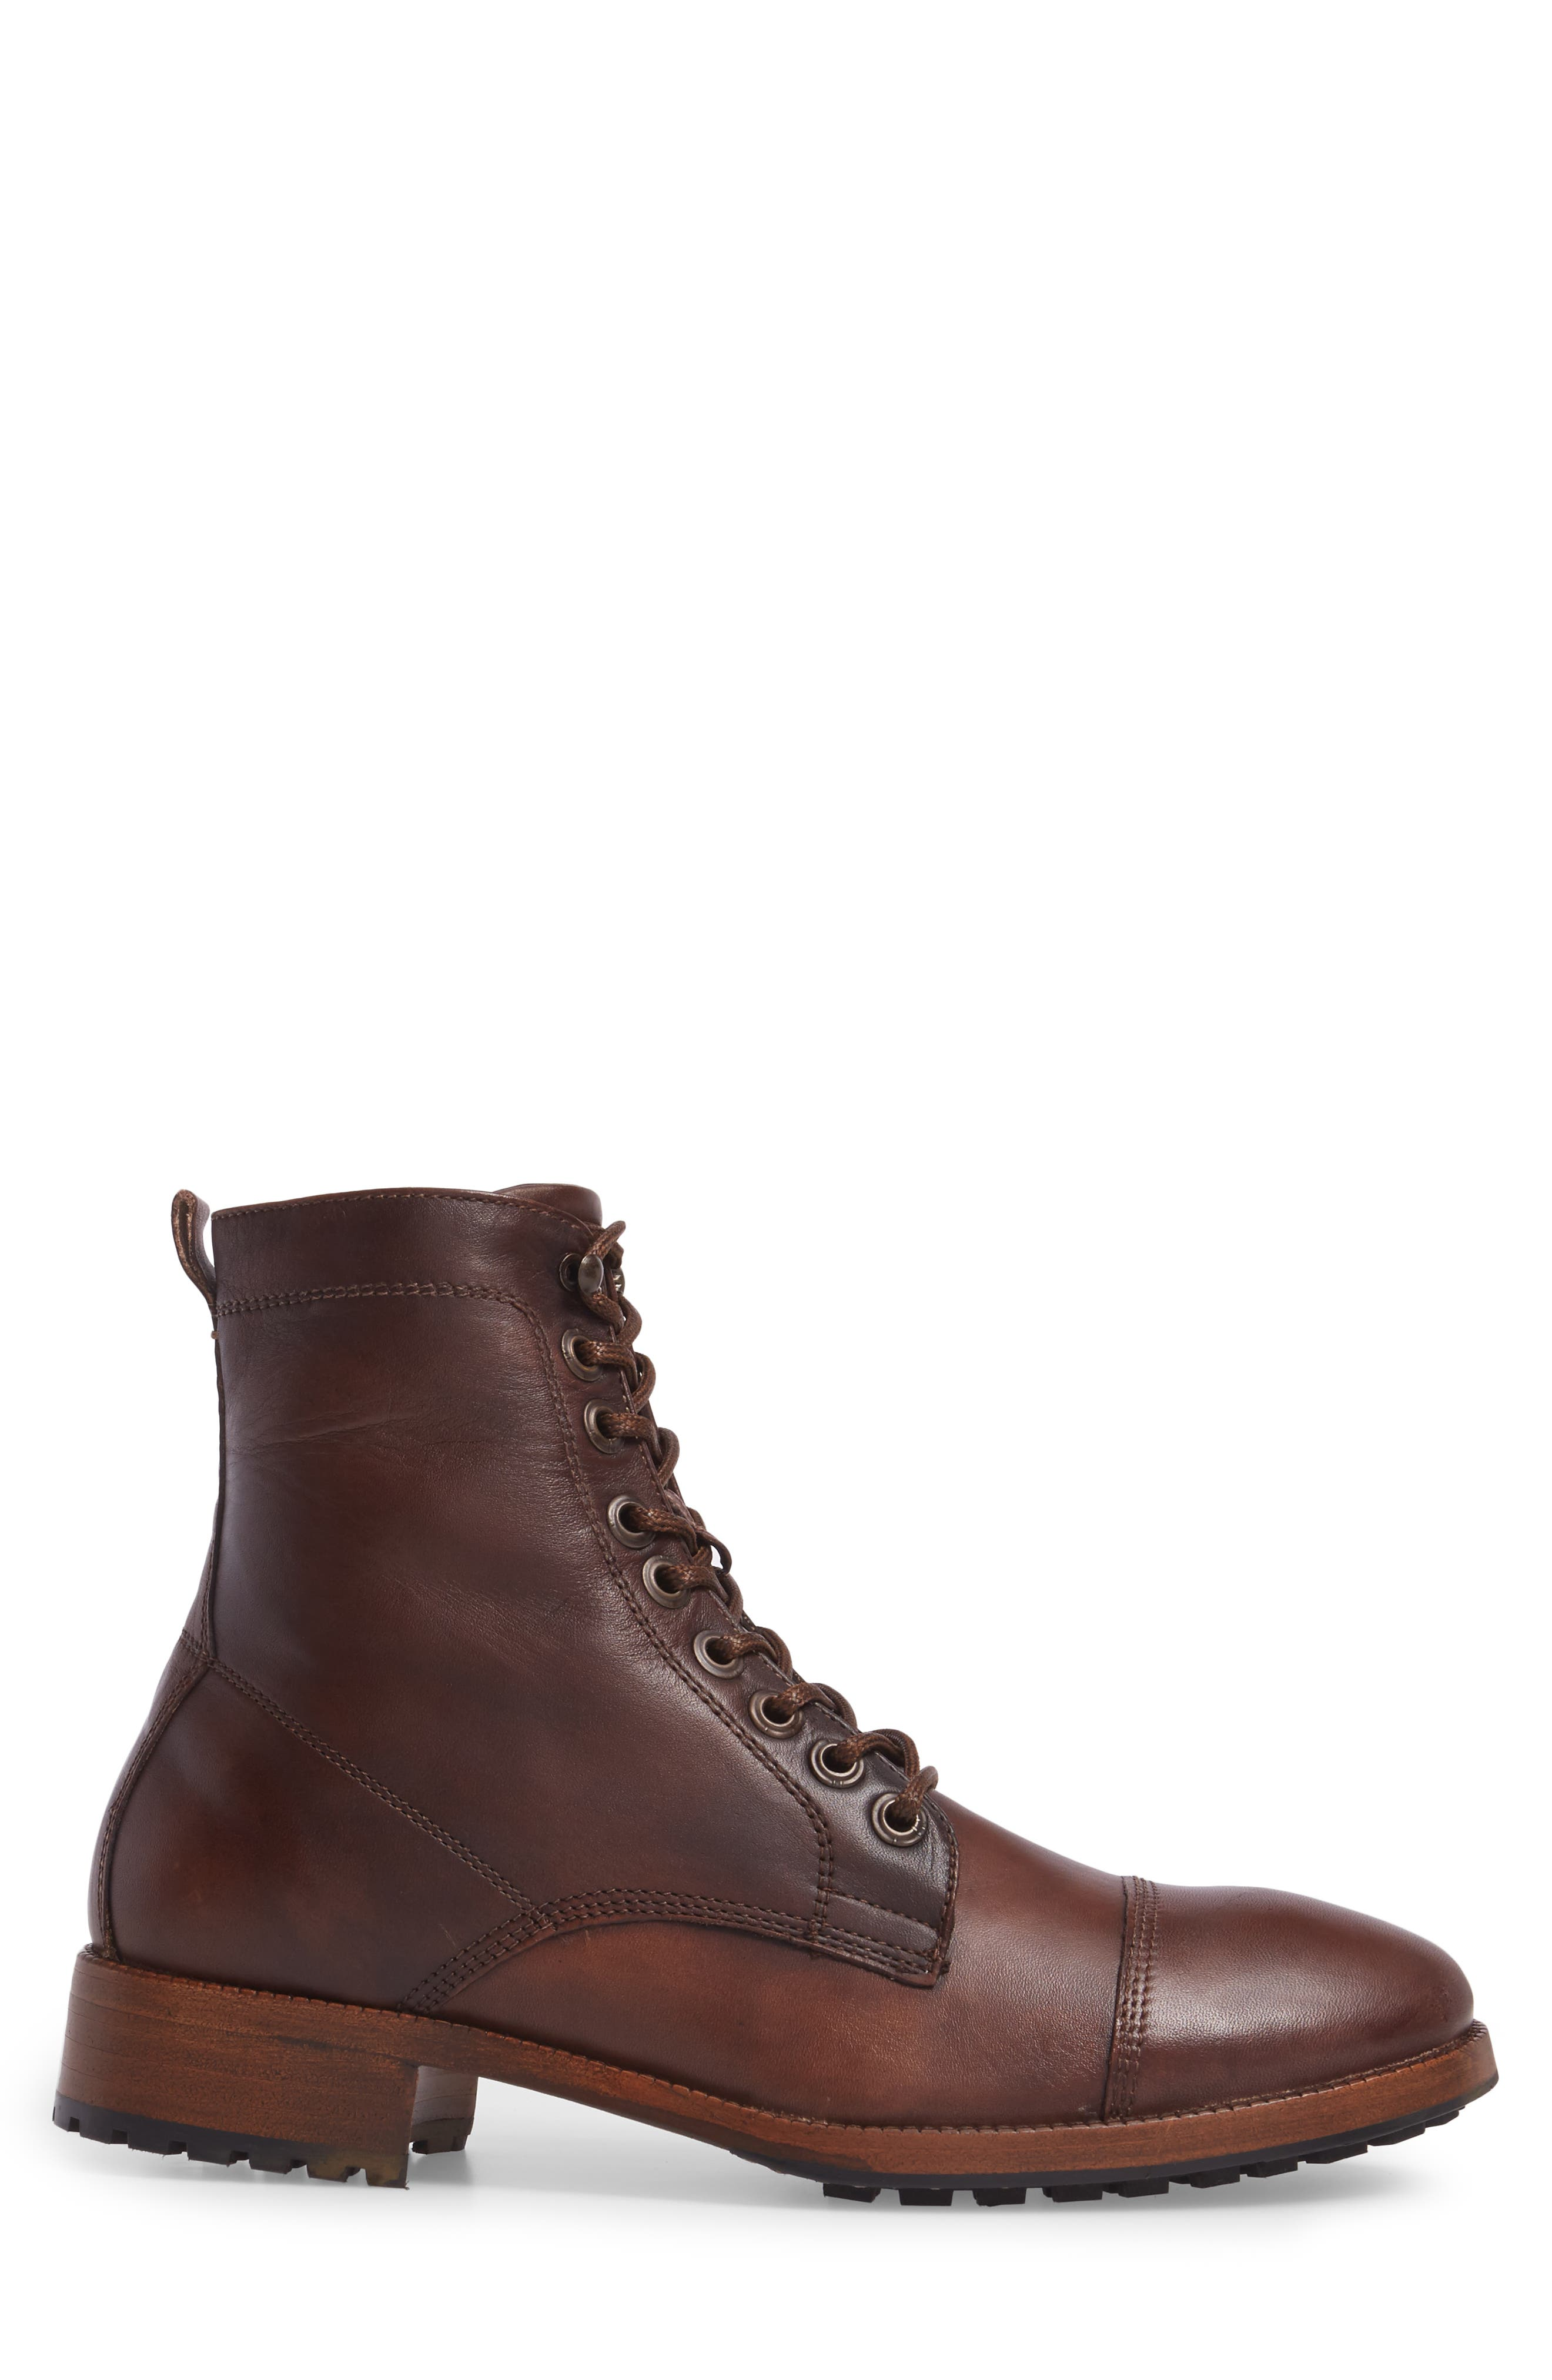 x GQ Ted Cap Toe Boot,                             Alternate thumbnail 3, color,                             200